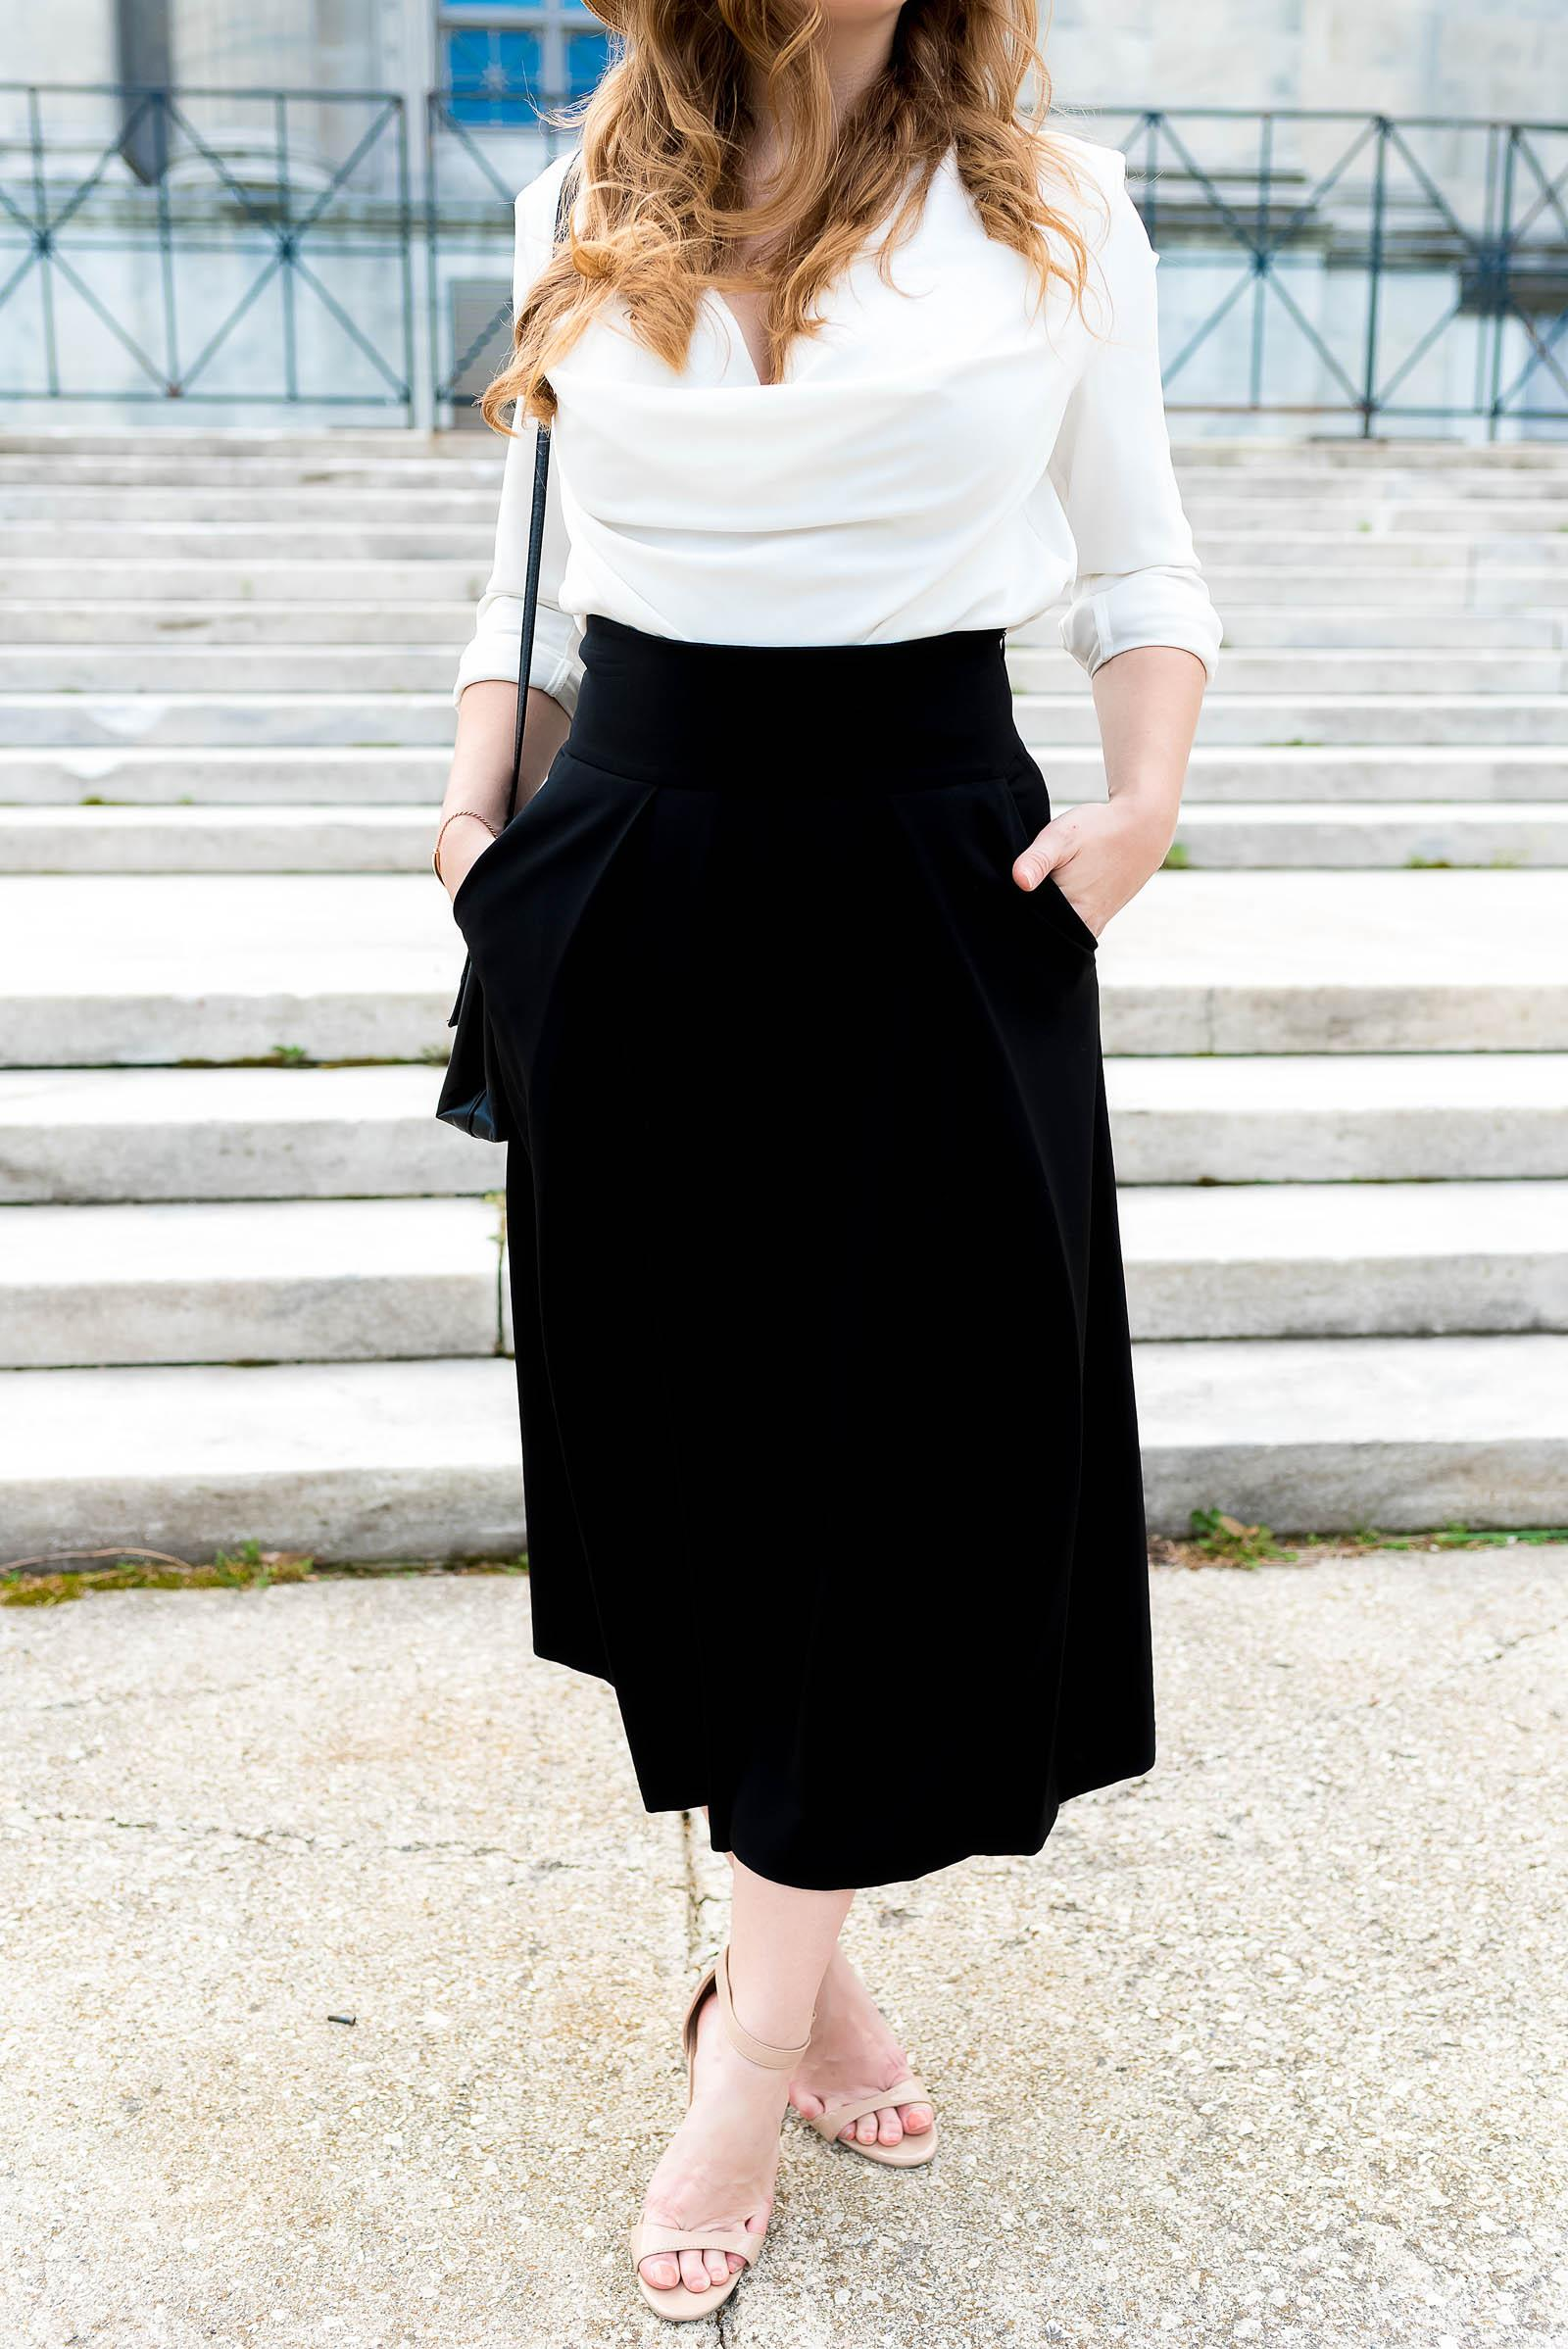 Classic Vintage-Inspired Black and White Summer Outfit